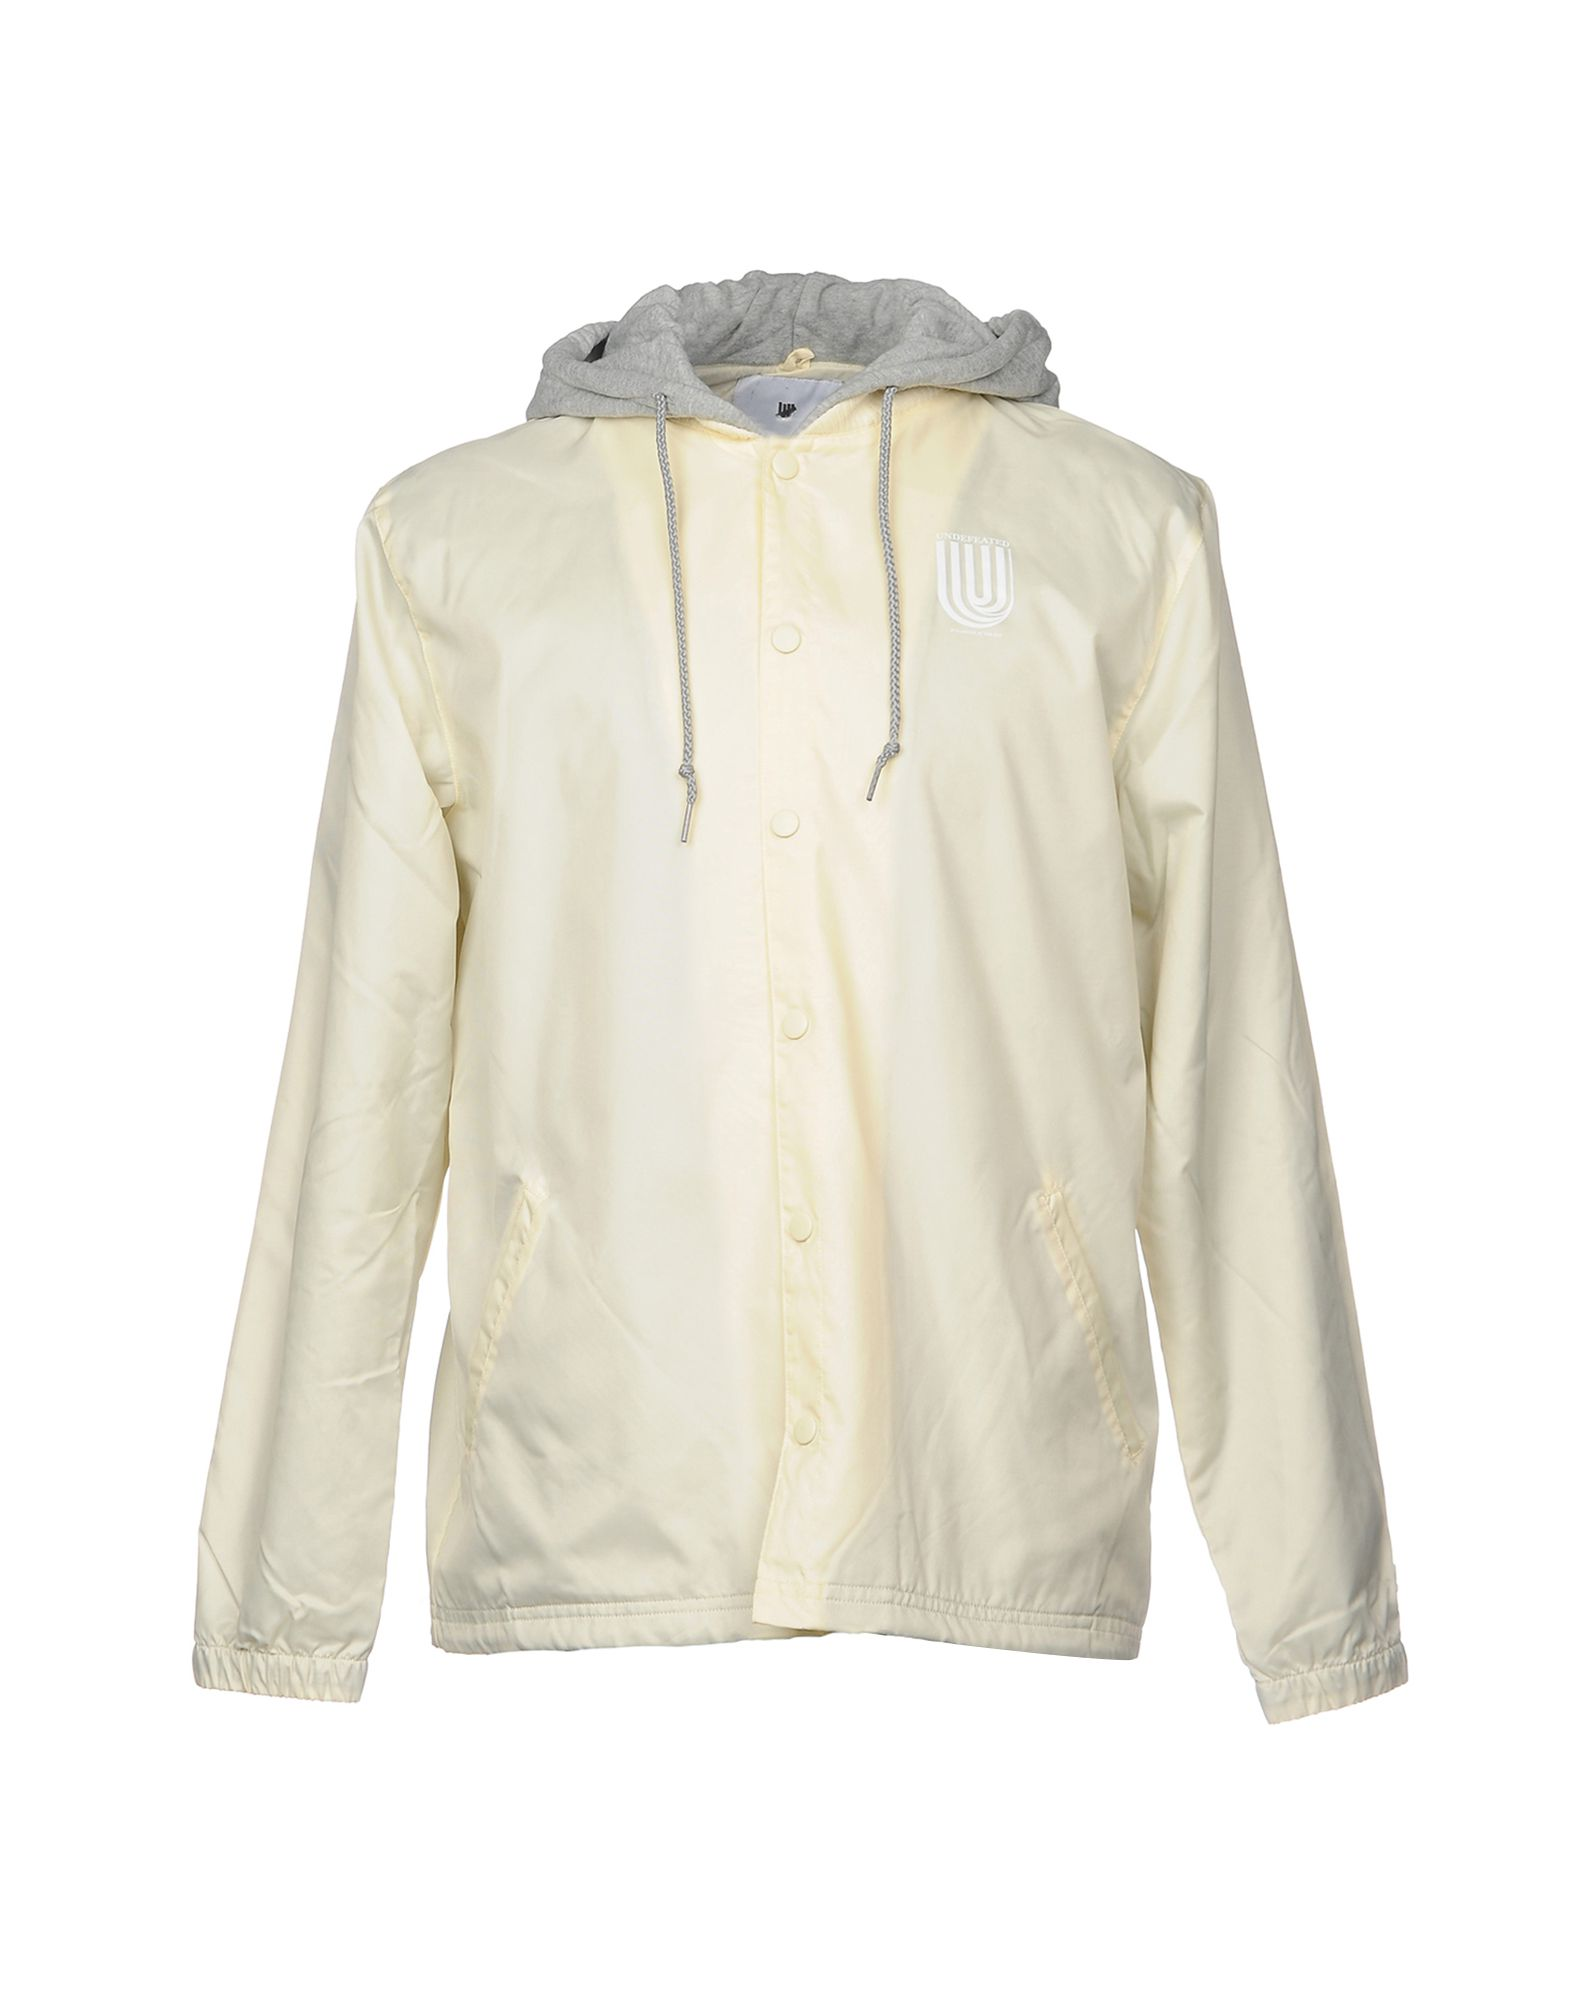 UNDEFEATED Bomber in Ivory